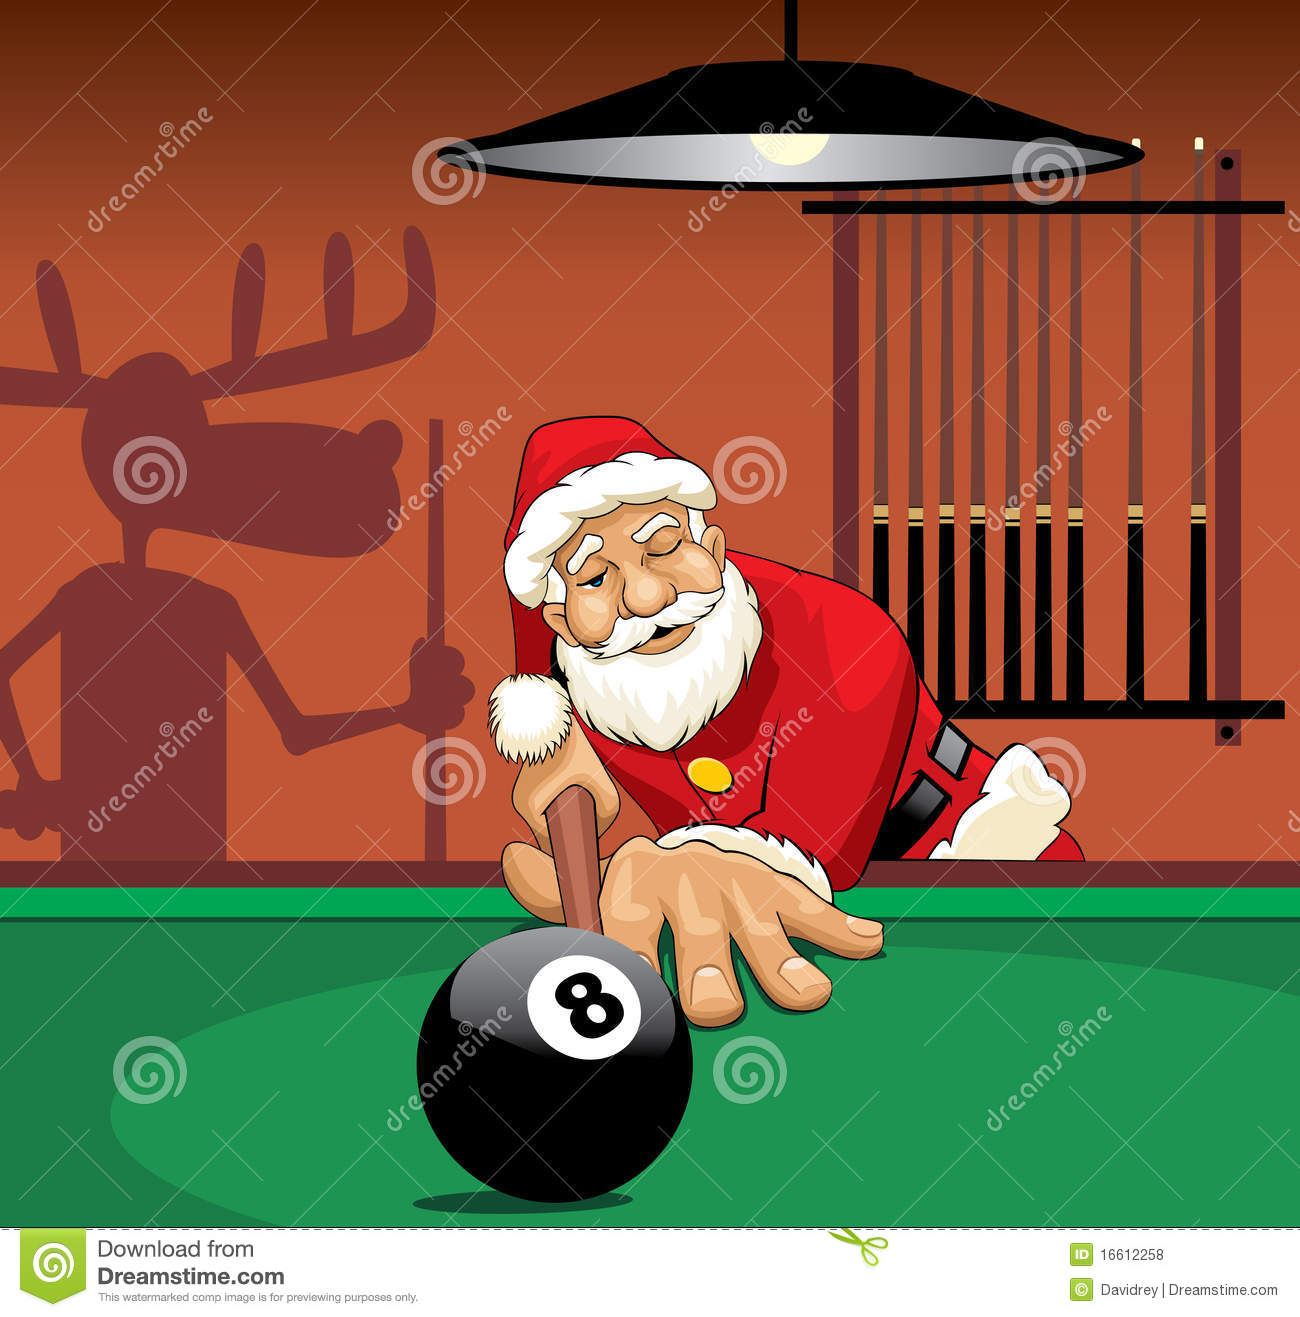 santa claus playing pool royalty free stock photos image clip art wedding bells decorations clip art wedding bells decorations